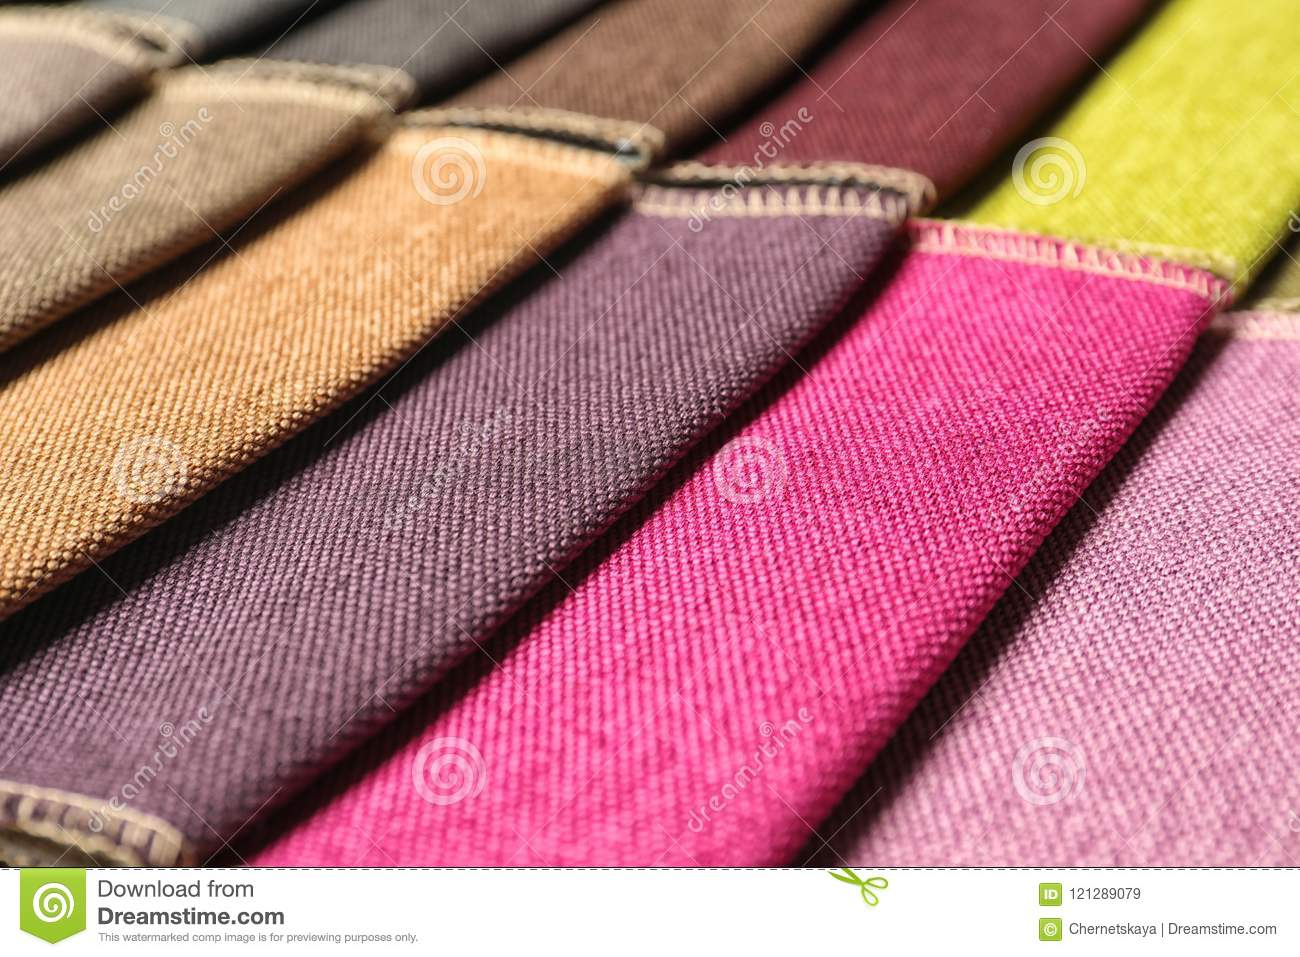 Fabric samples of different colors for interior design